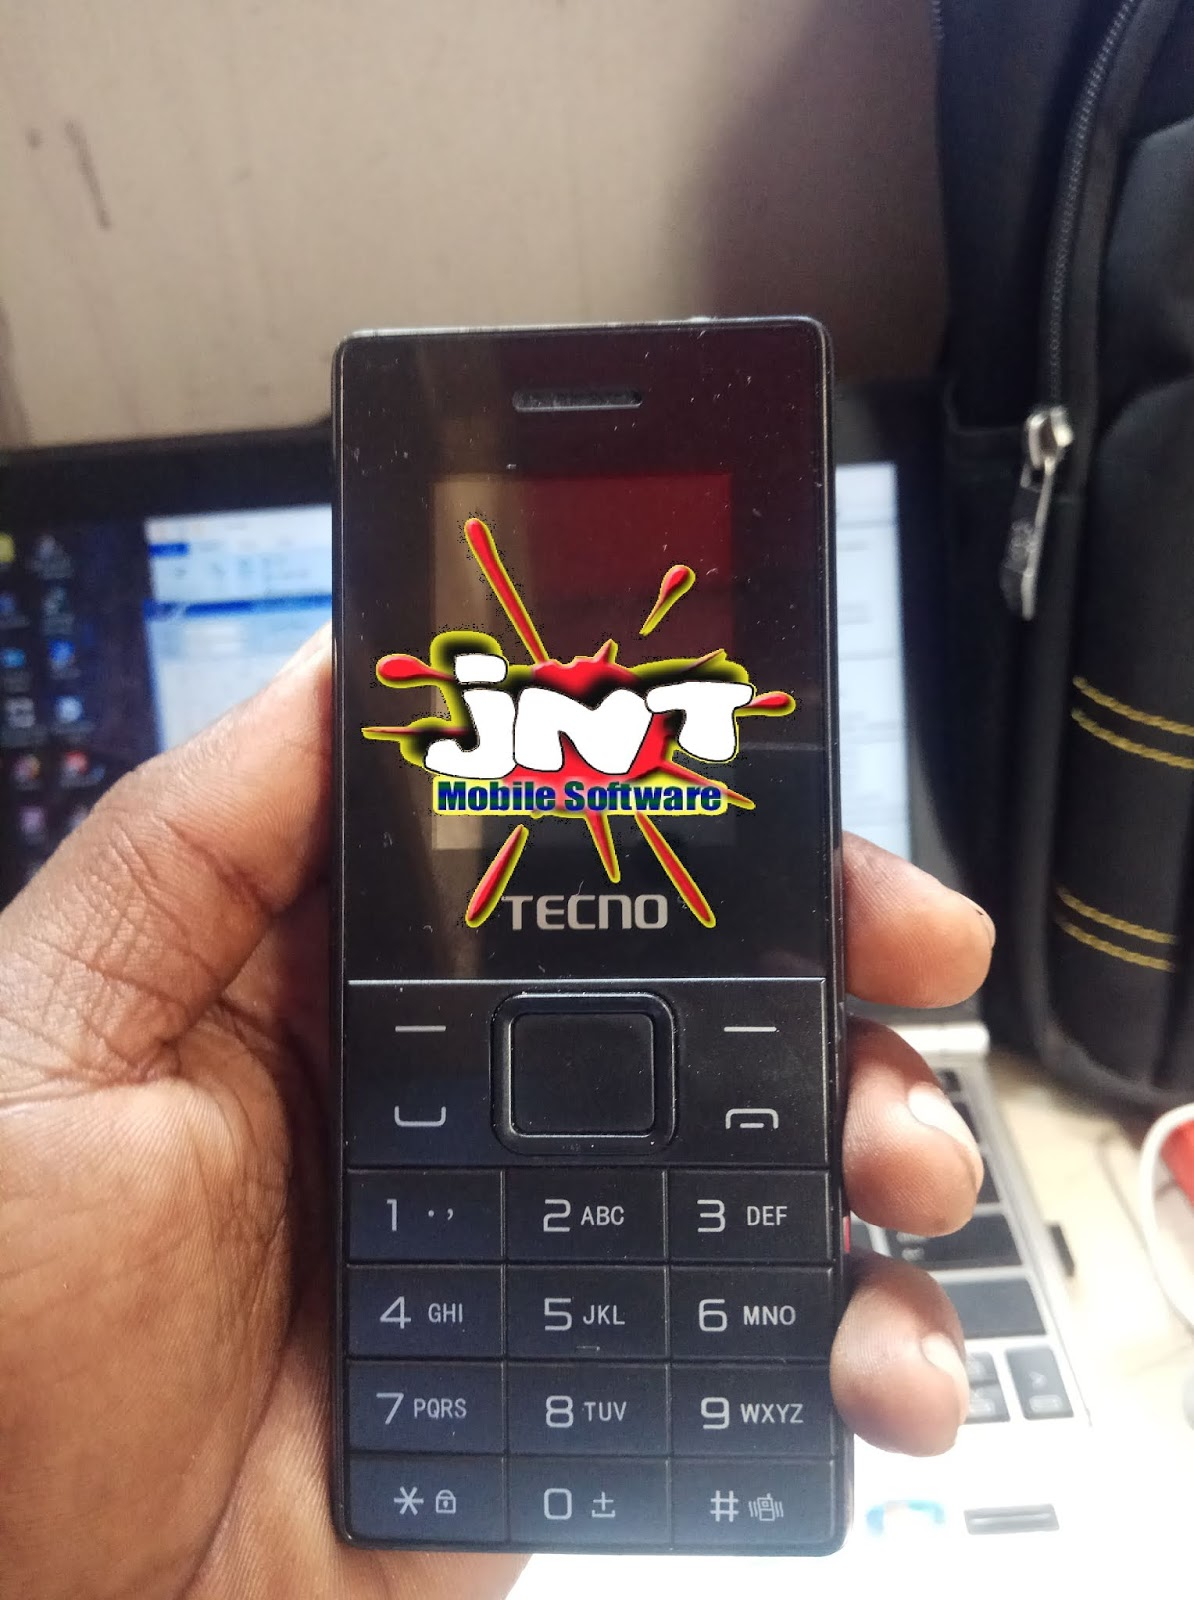 TECNO T350 FLASH FILE/ FIRMWARE FREE DOWNLOAD, TESTED AND